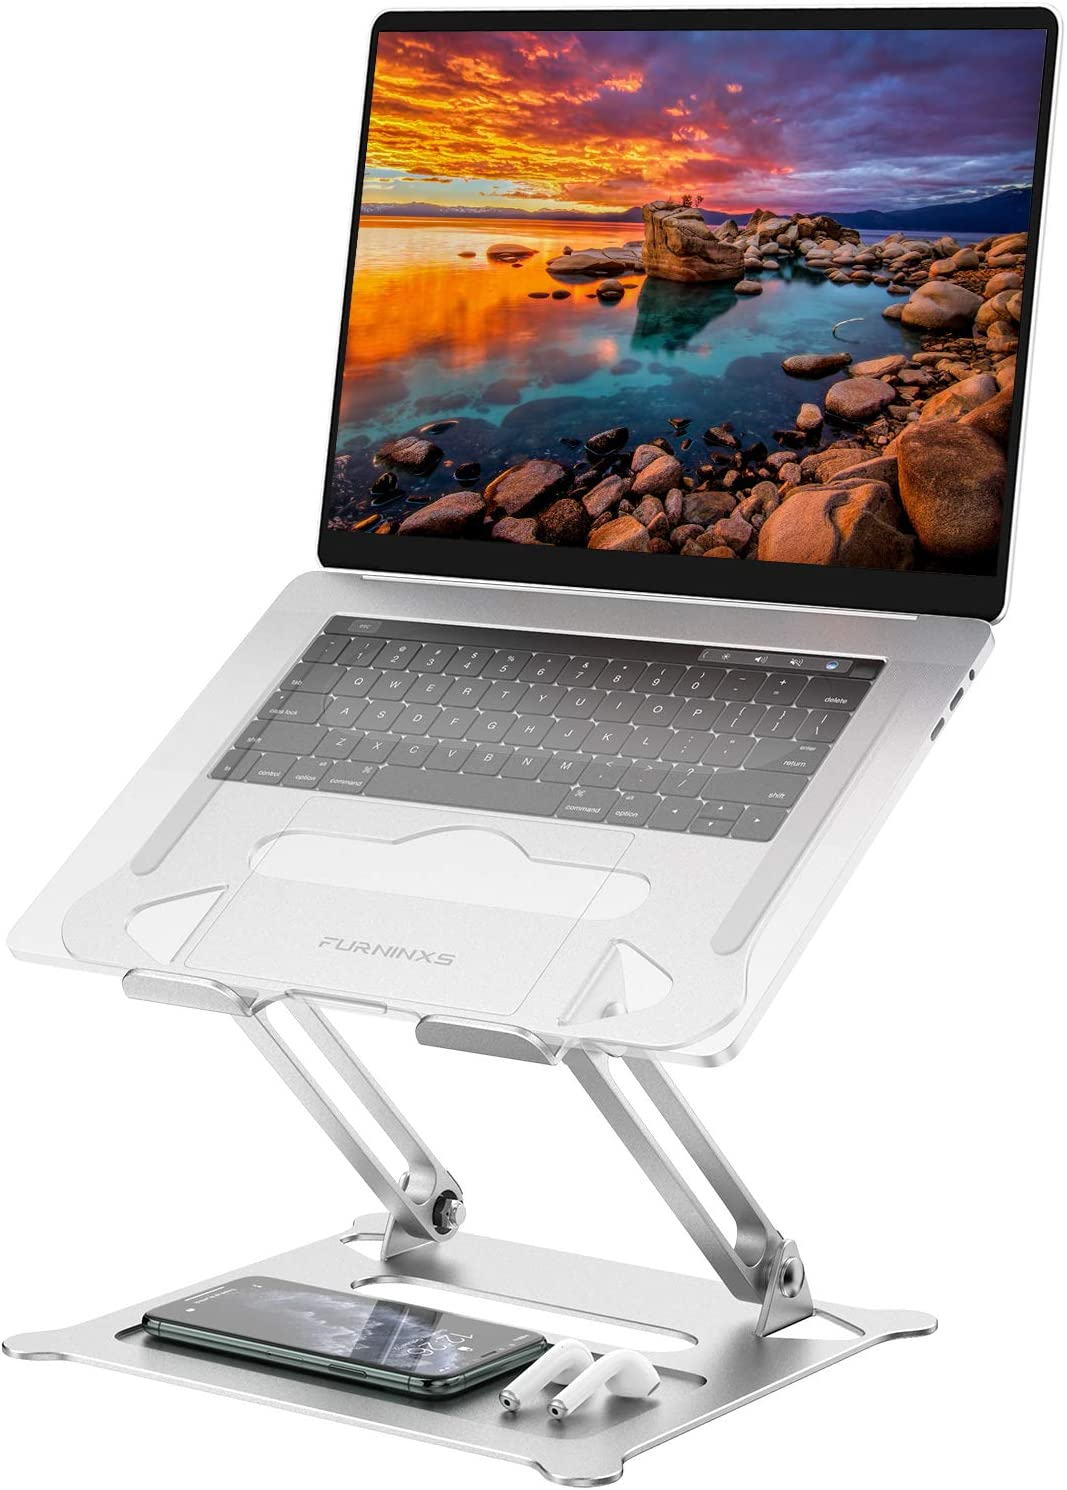 "Adjustable Laptop Stand, Ergonomic Notebook Computer Holder, Aluminum Foldable Riser Stand Compatible with 11"" to 17.3"" Laptop, MacBook, Air, Pro, Dell XPS, Samsung and Lenovo by FURNINXS (Silver)"